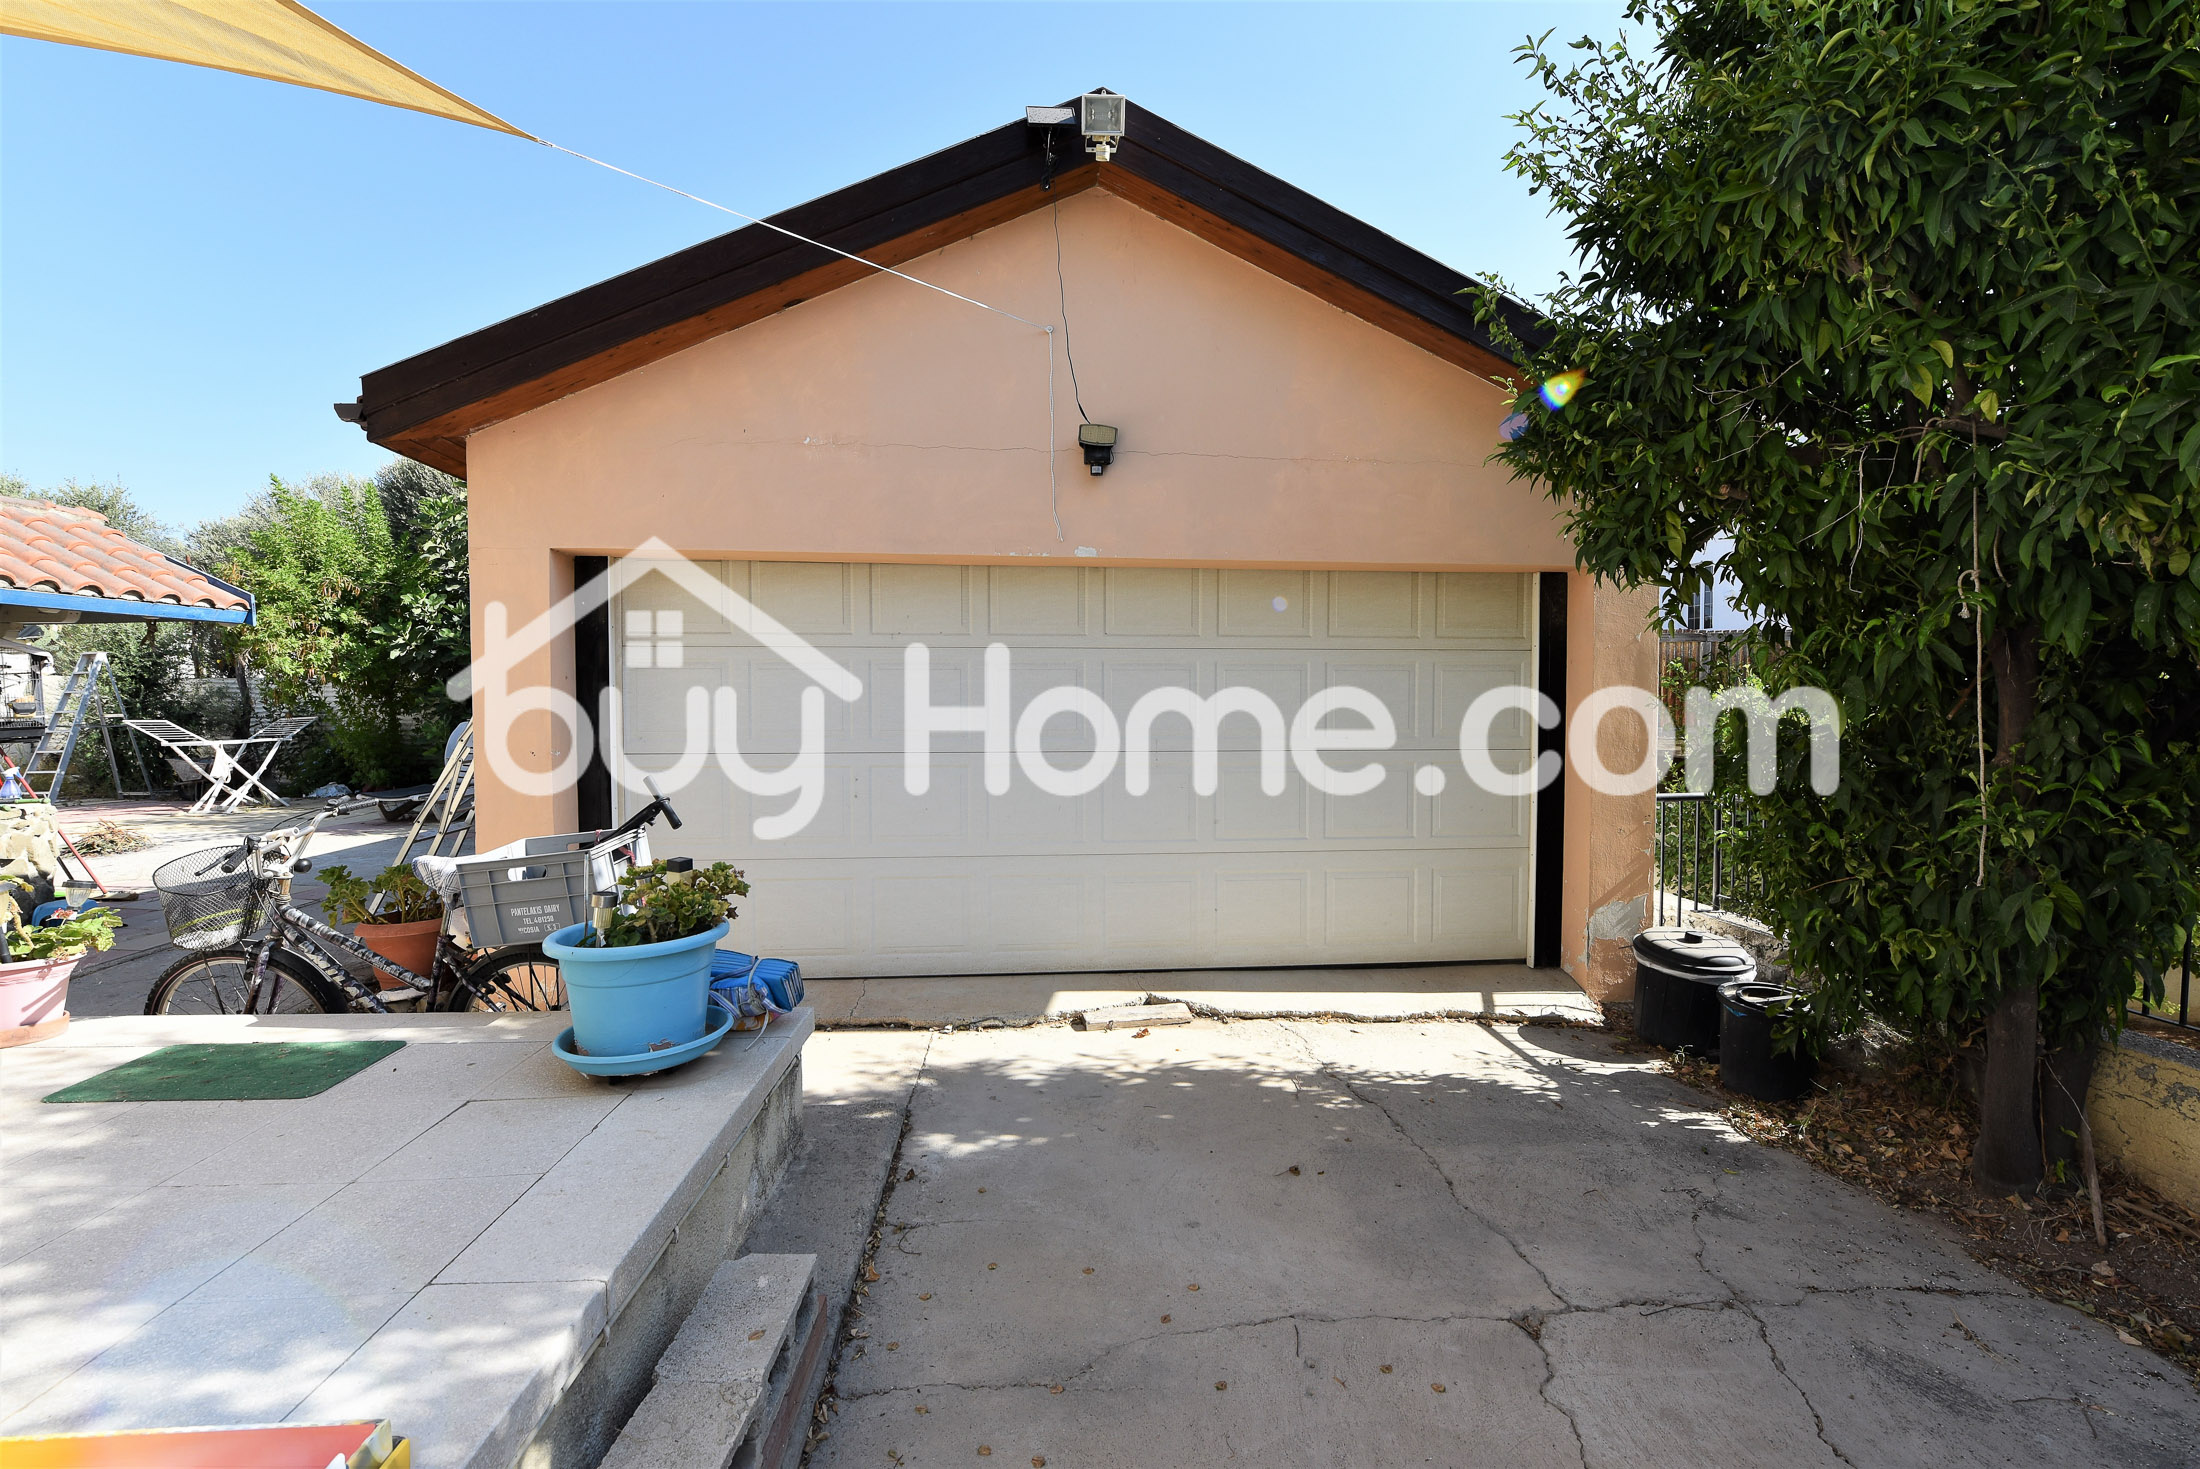 5 bedroom house in Livadia | BuyHome